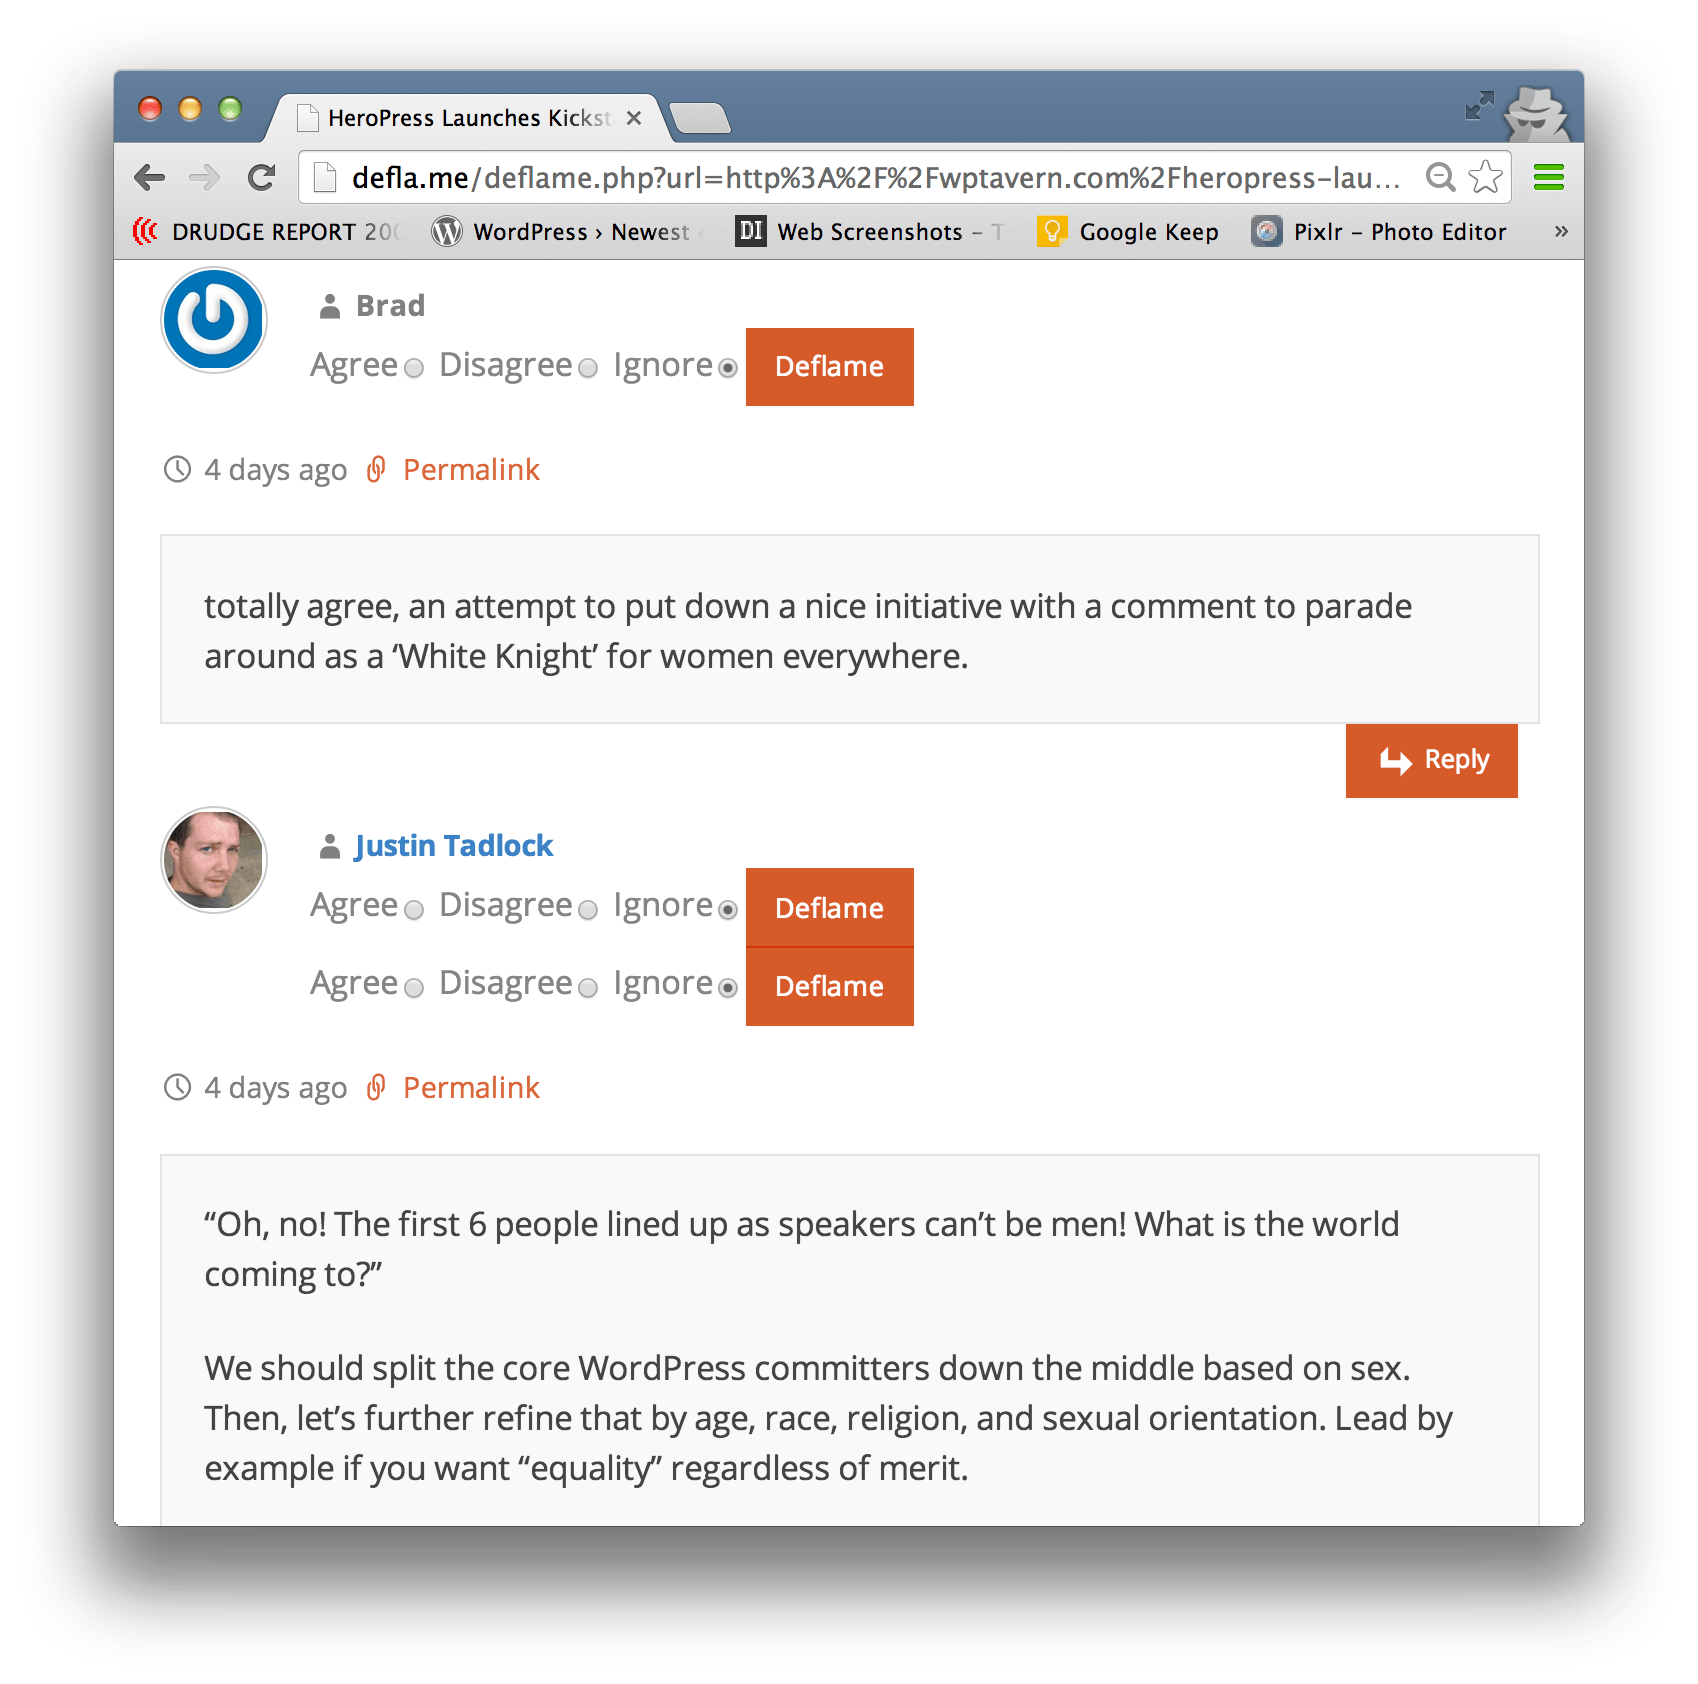 Deflame Web App Aims to Improve Discussion on WordPress